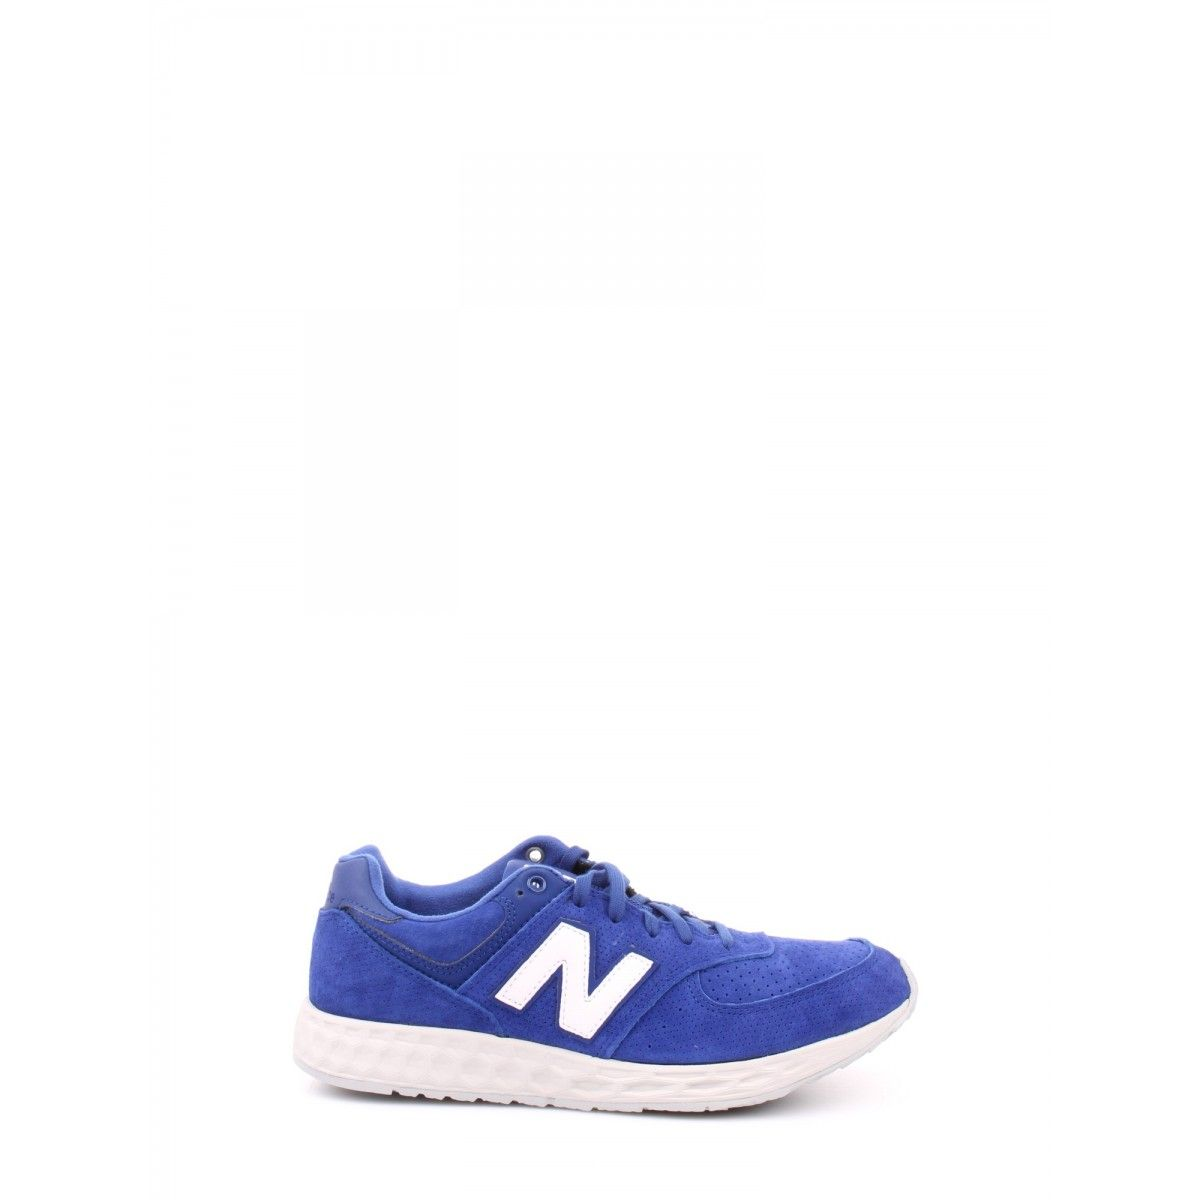 New balance - Leather/synthetic/mesh blue MFL574FE